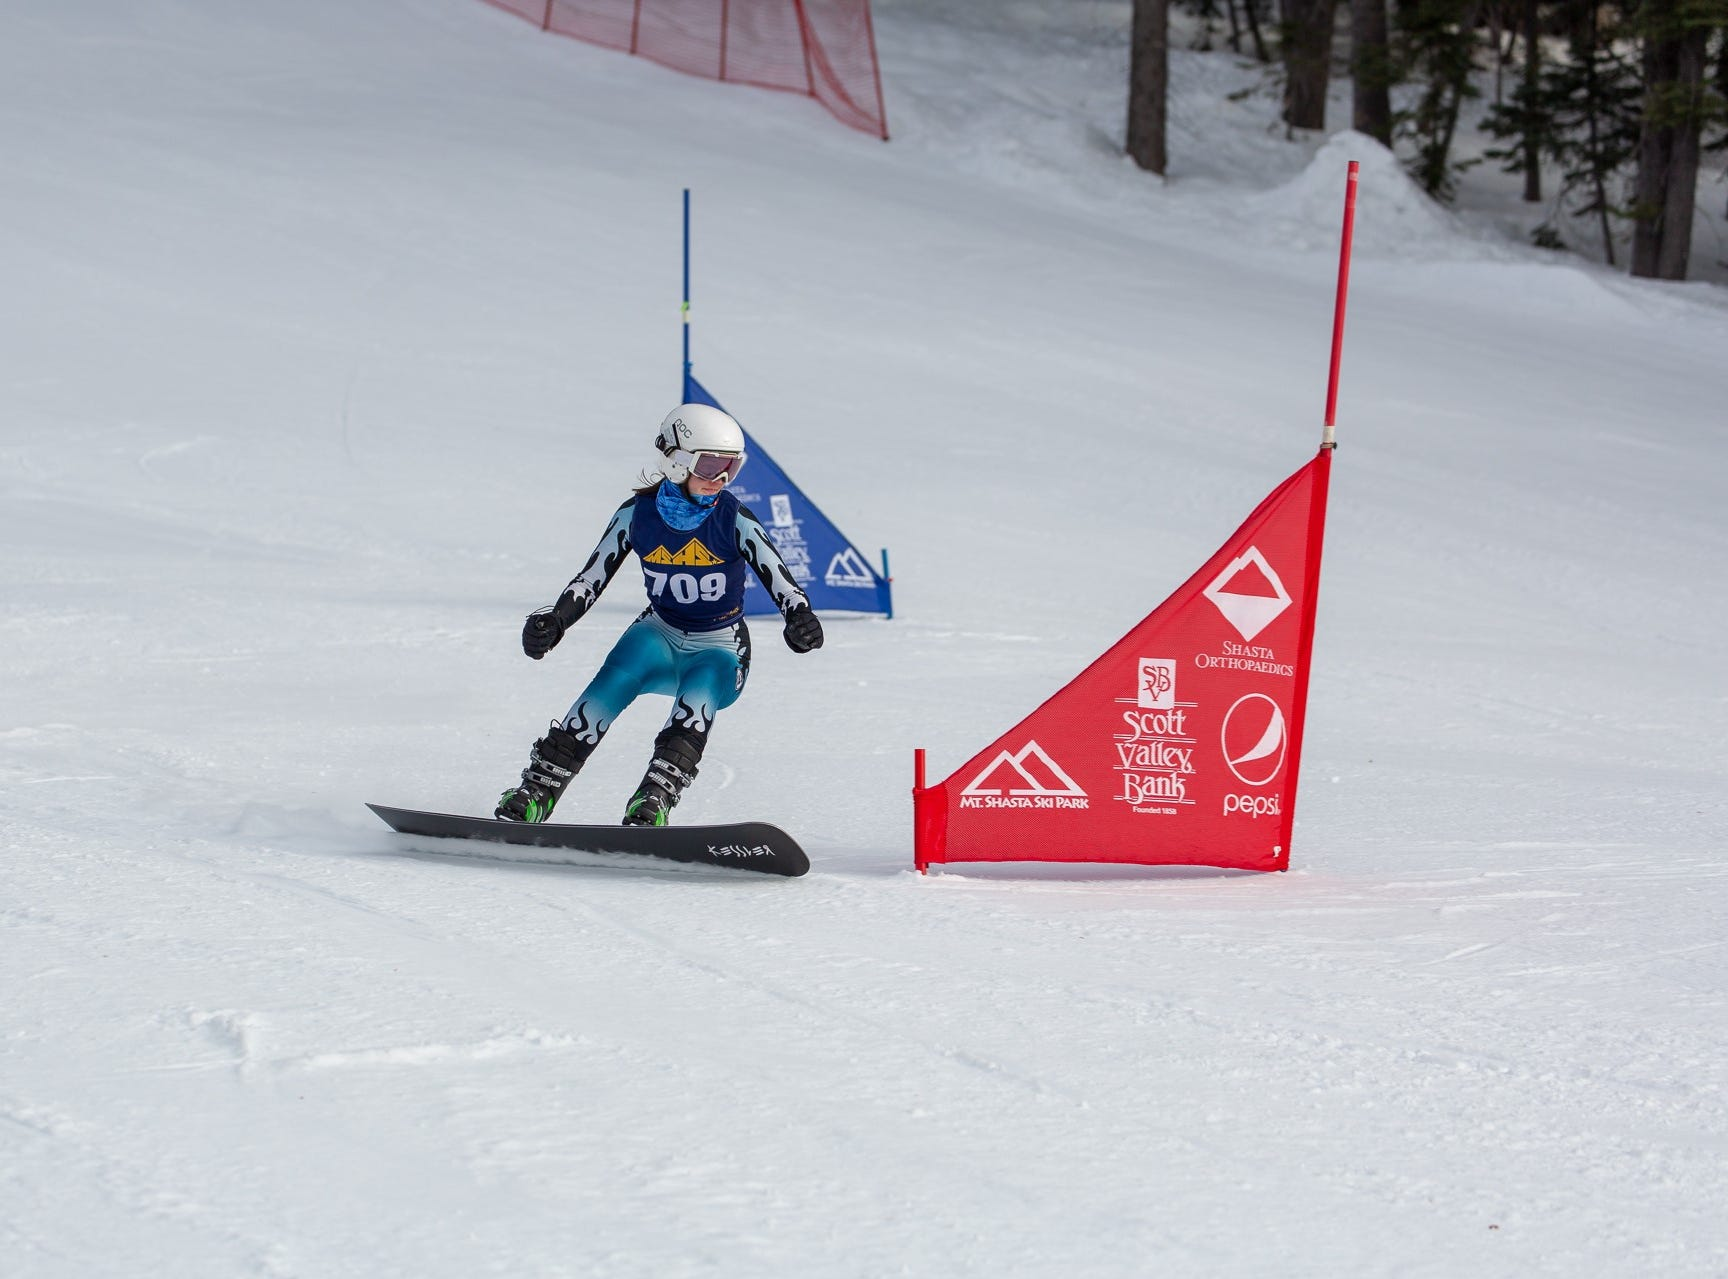 Tate Harkness of Mt. Shasta competes in the first high school snowboard meet of 2019 on Monday, Jan. 14 at Mt. Shasta Ski Park.